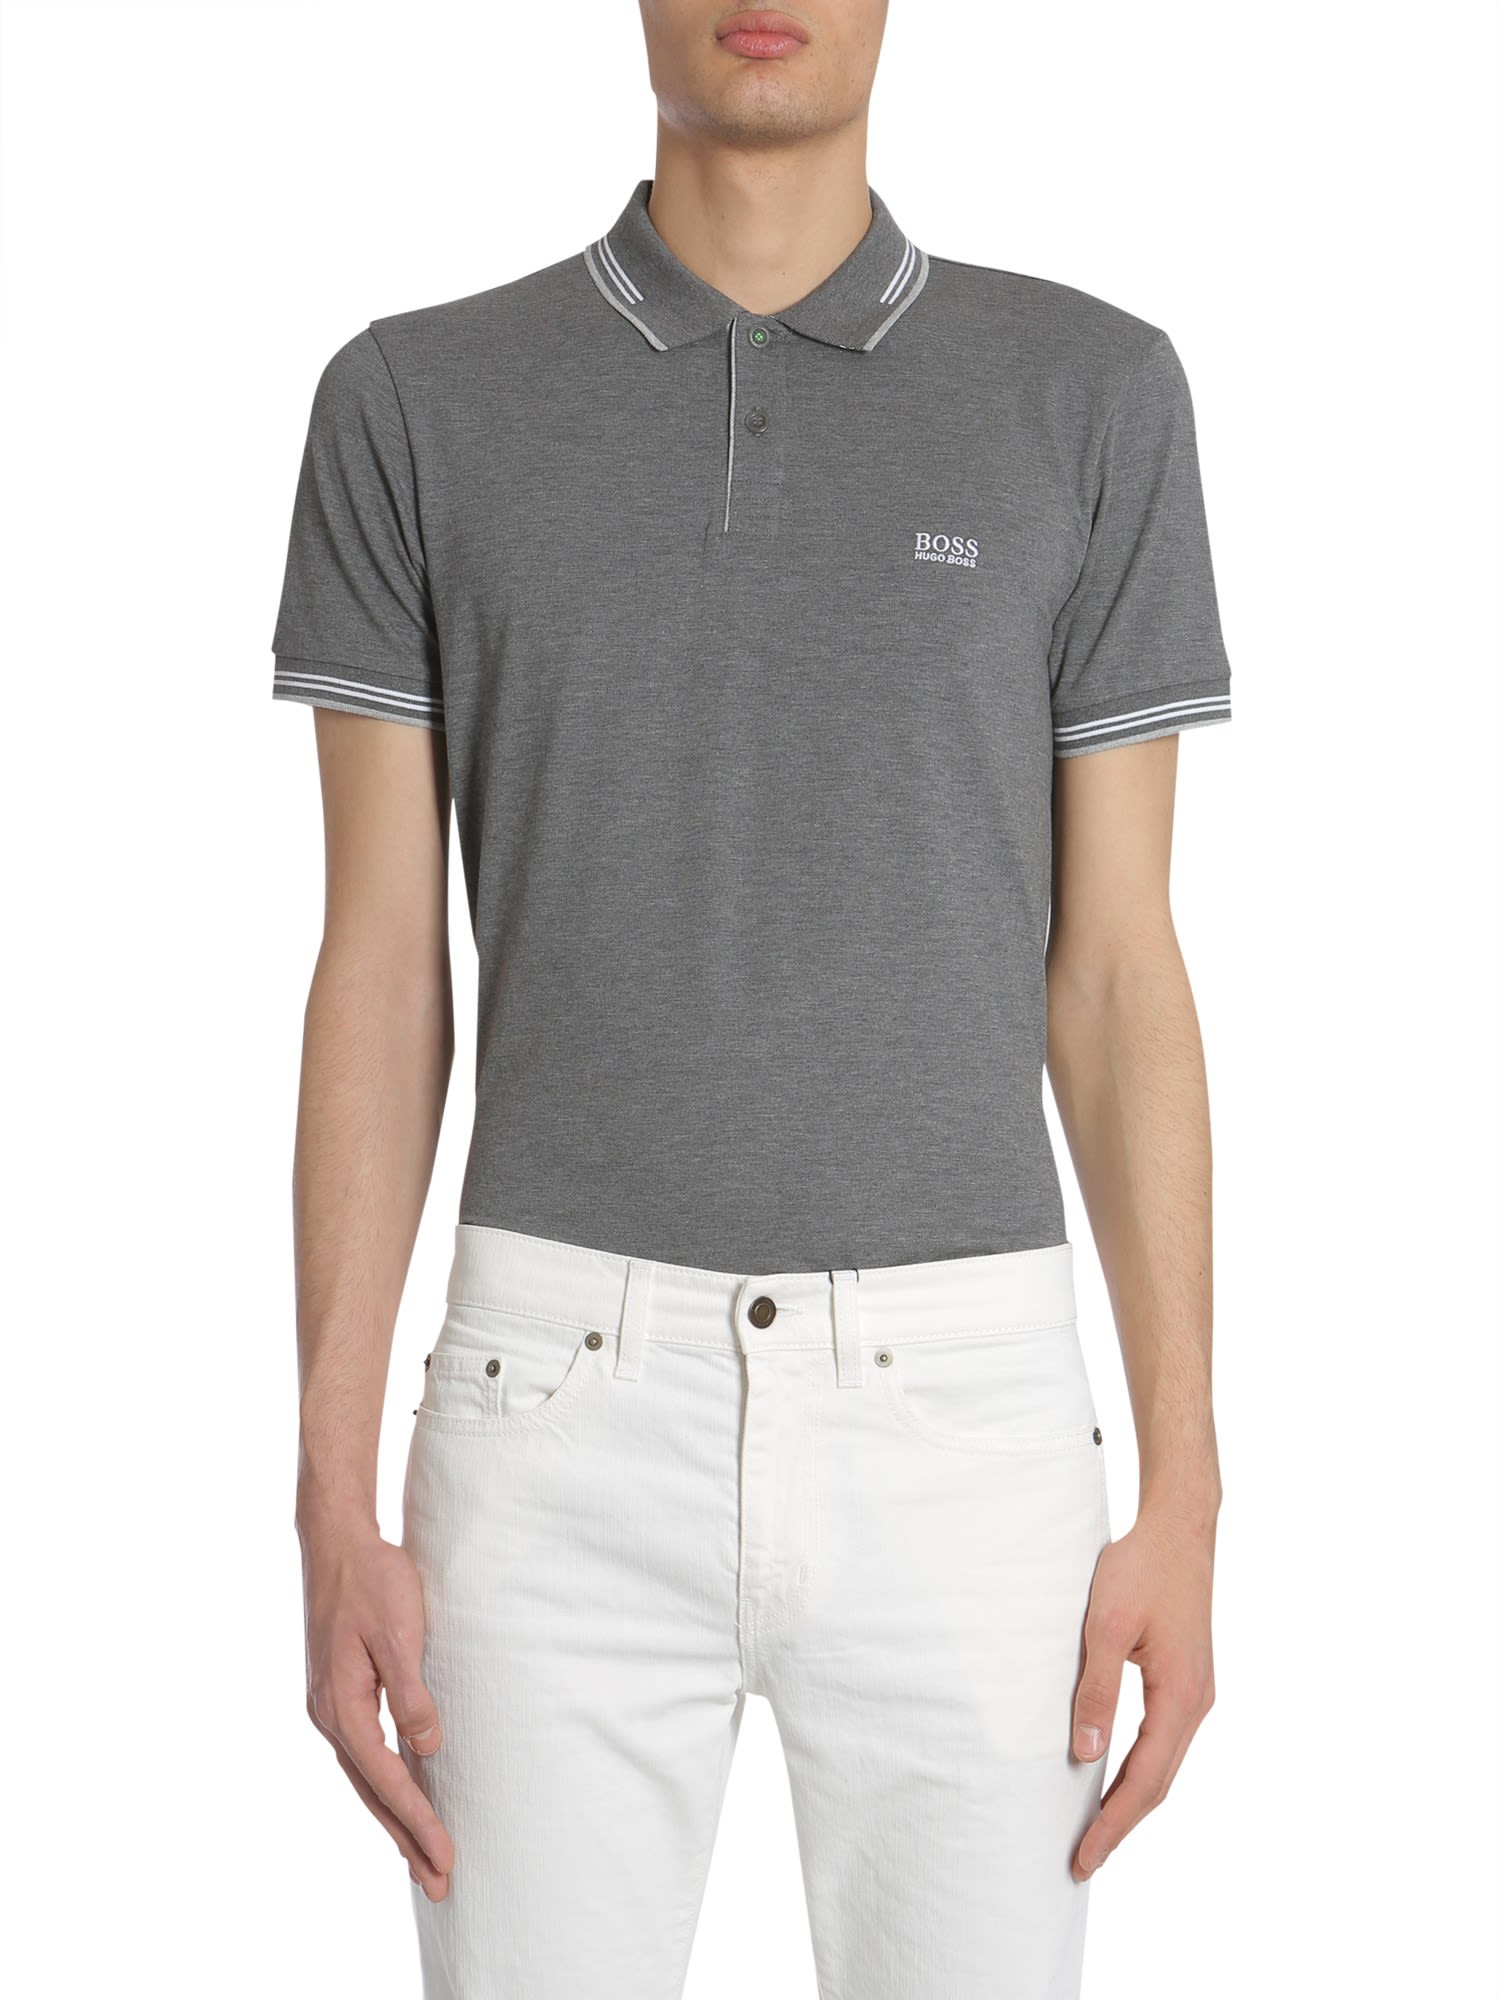 TOPWEAR - Polo shirts HUGO BOSS Clearance Find Great Cheap Sale Classic 7X82y